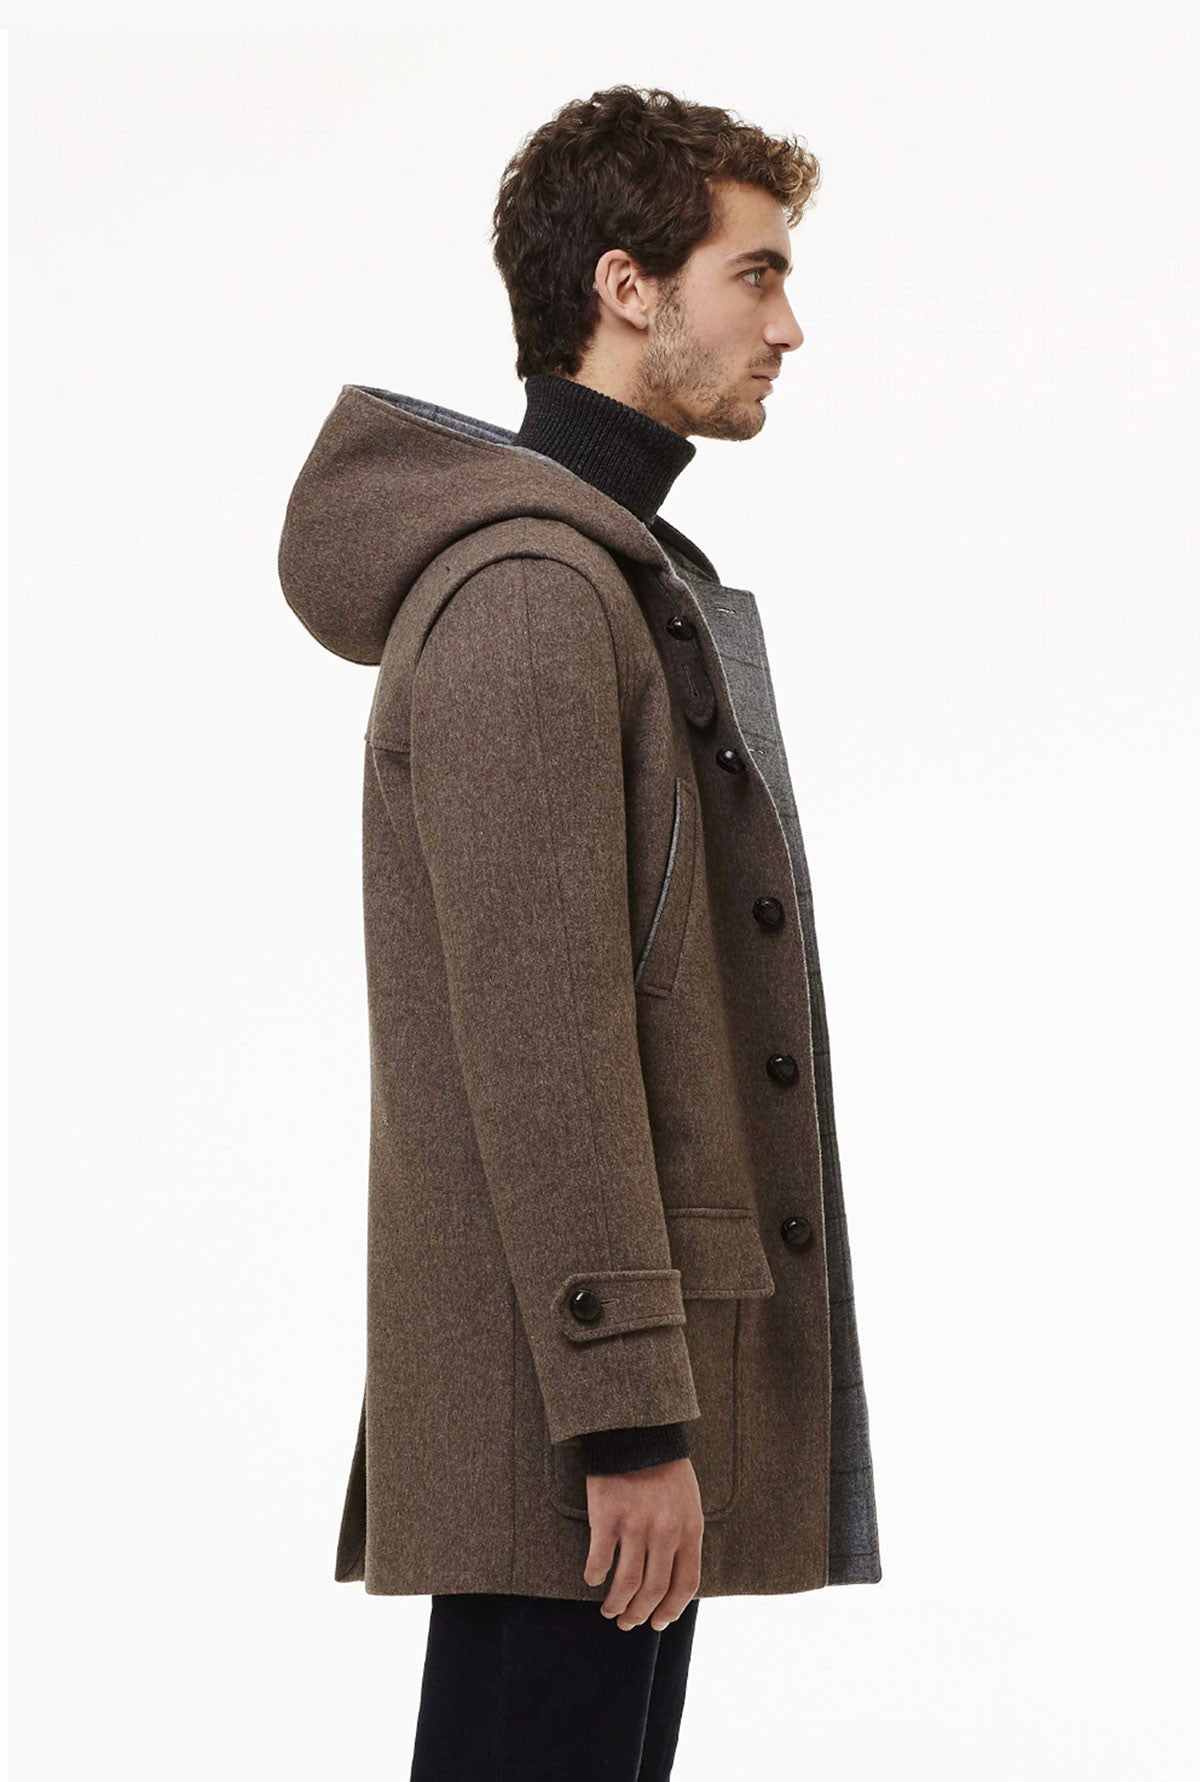 Duffle coat with patch pockets and hood.